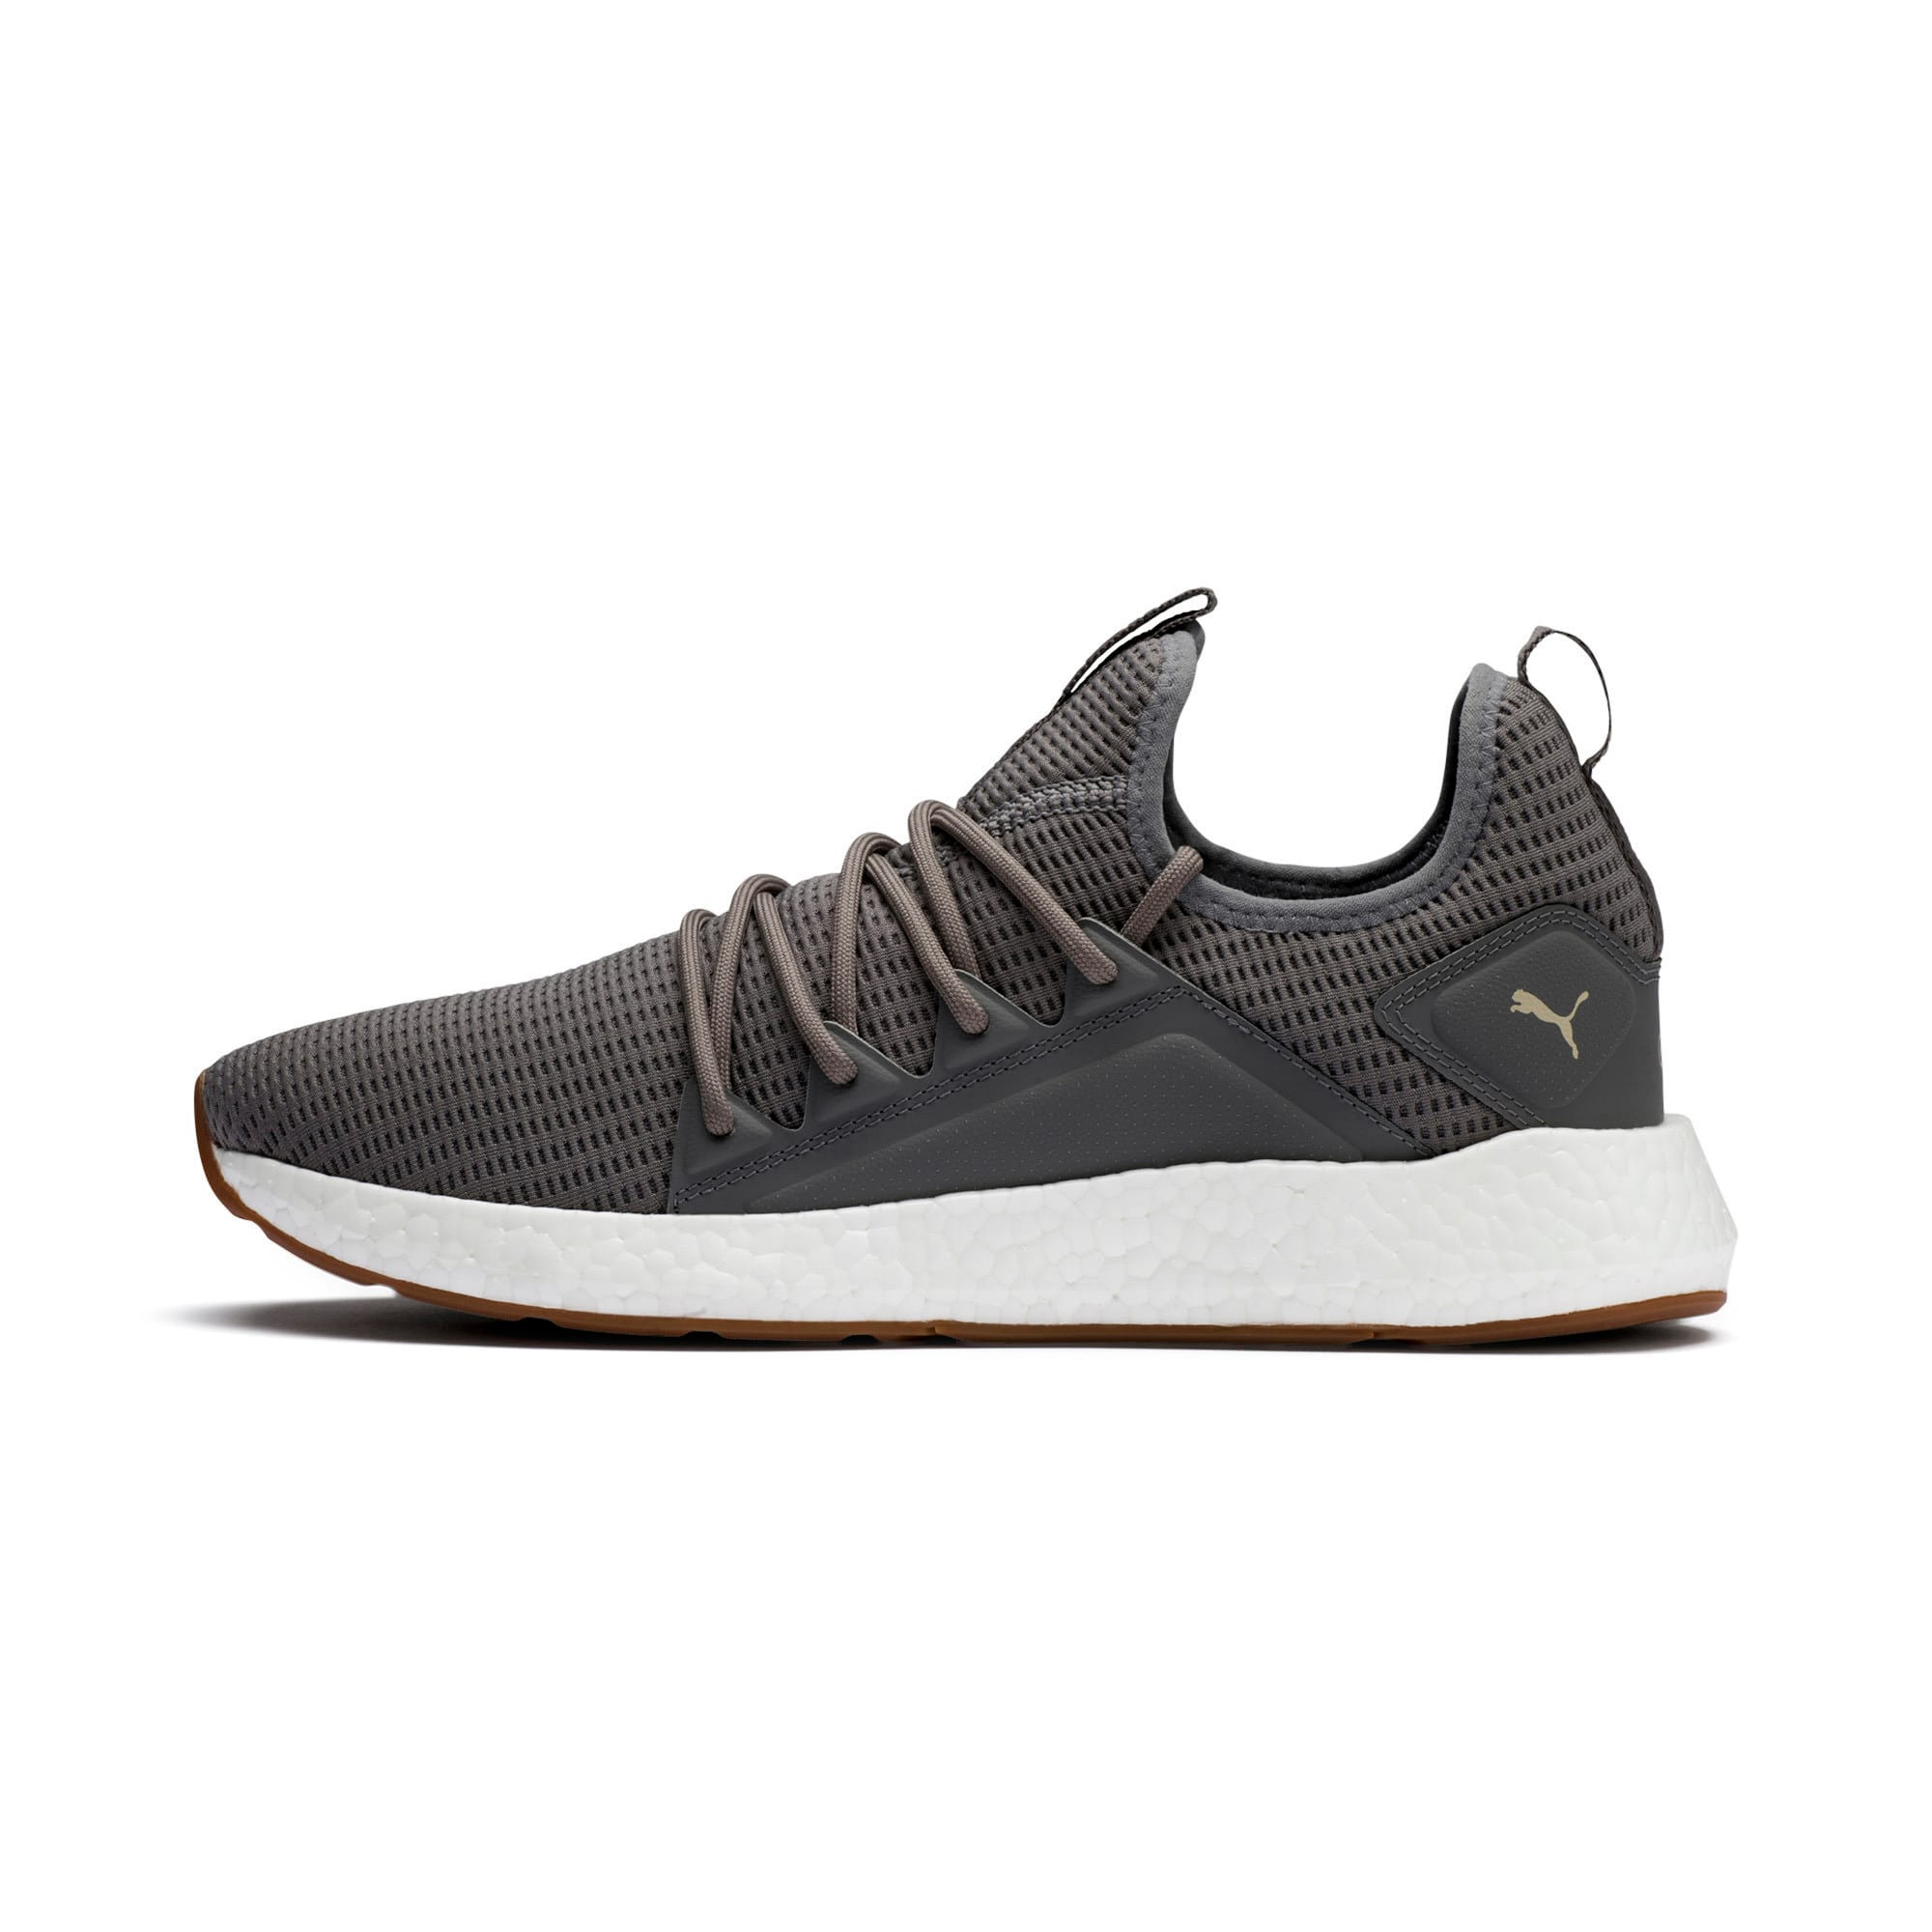 Thumbnail 1 of NRGY Neko Future Men's Trainers, Charcoal Gray-Taos Taupe, medium-IND